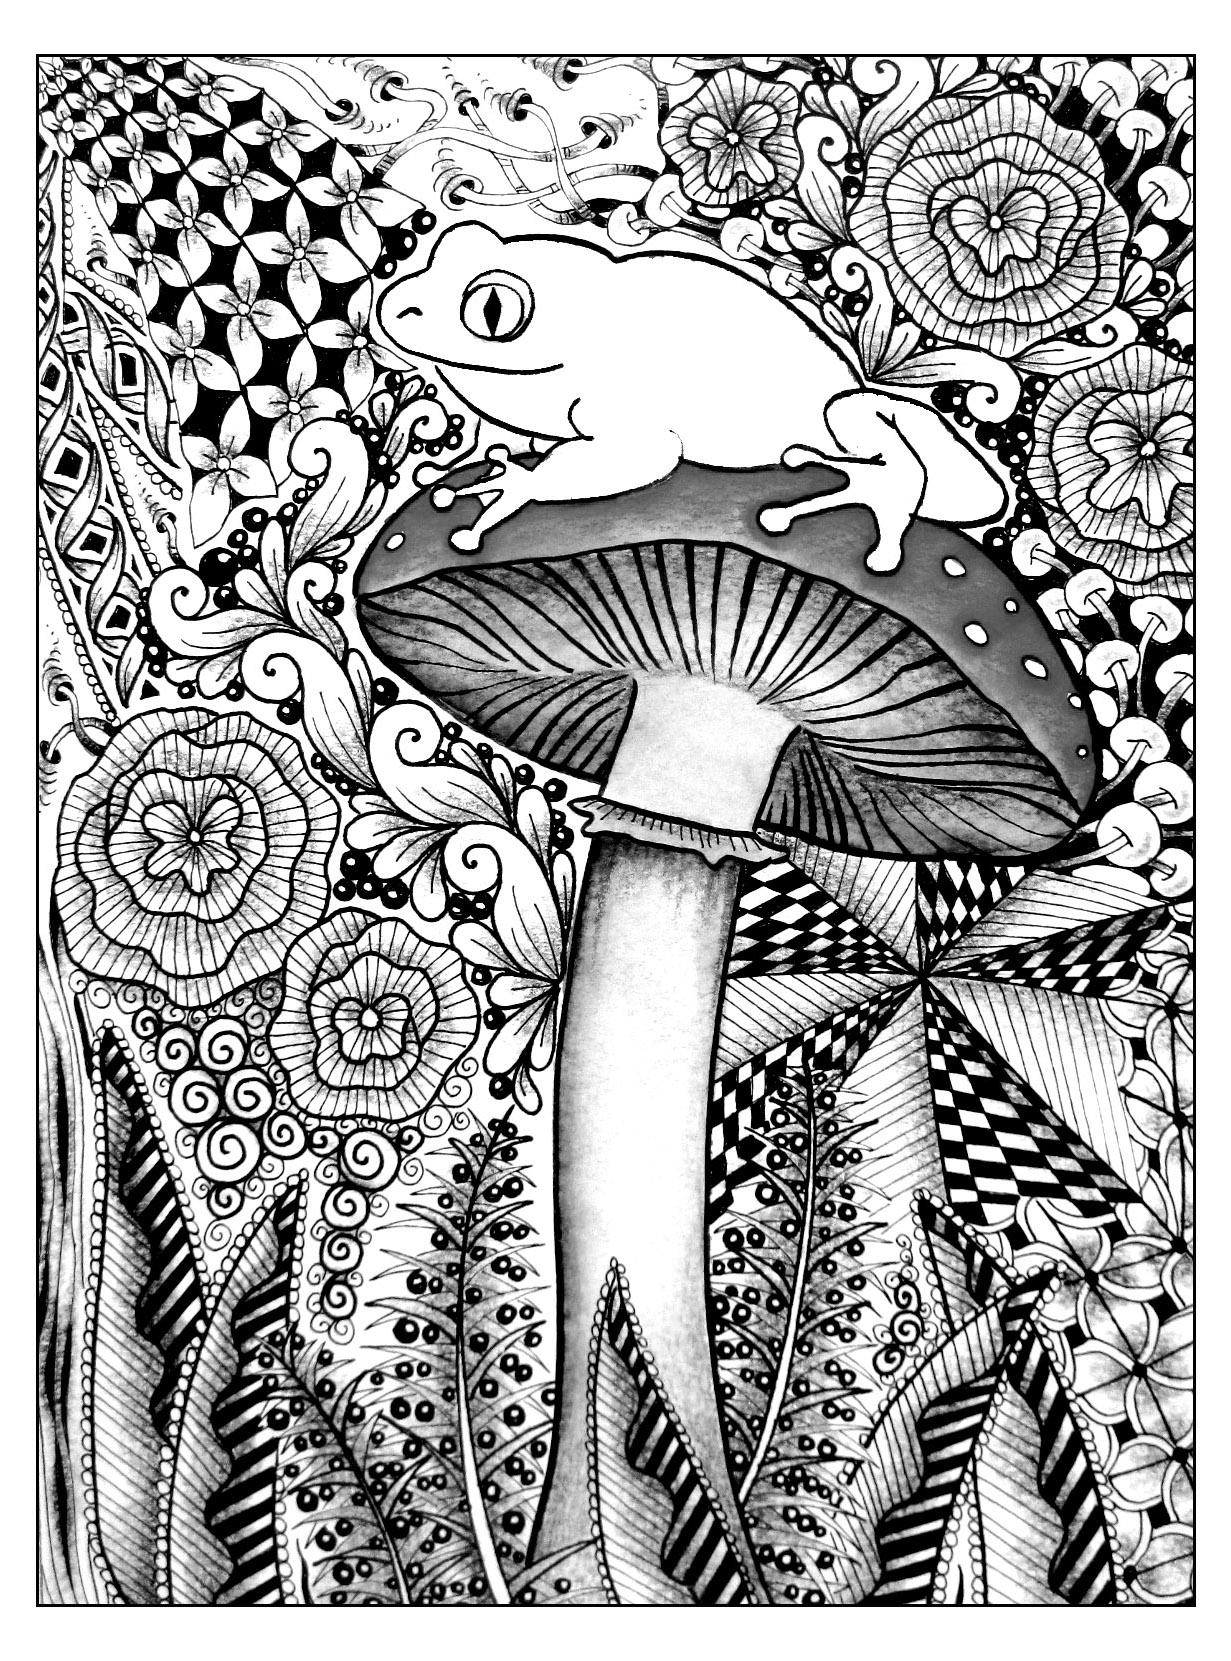 Frog on a mushroom - Flowers Adult Coloring Pages   coloring pages for adults cool